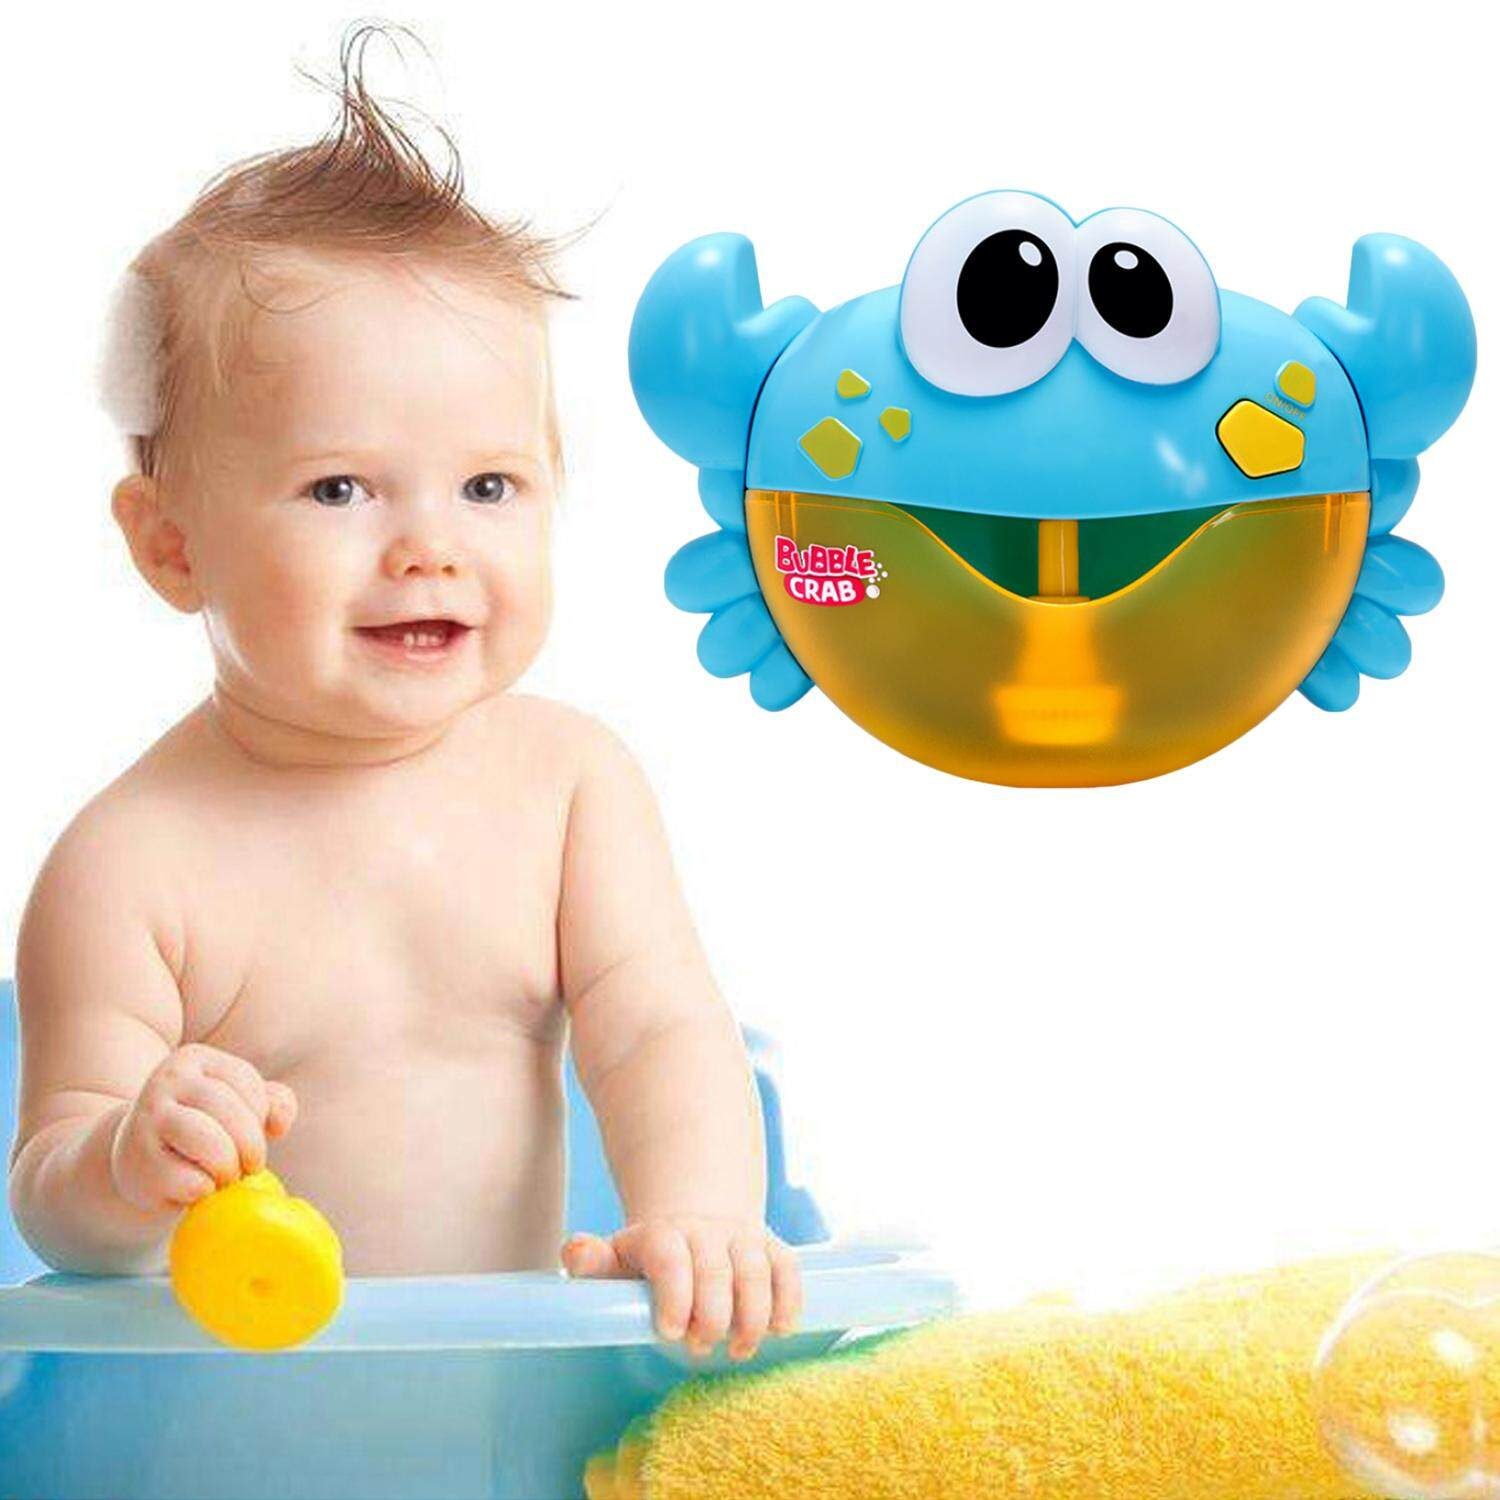 Baby Bath Toys Duck Showers Storage Bag Large Mesh Beach Bath Portab Foldable Bag Baby Shower Games Reborn Baby Doll Water Games Toys & Hobbies Bath Toy